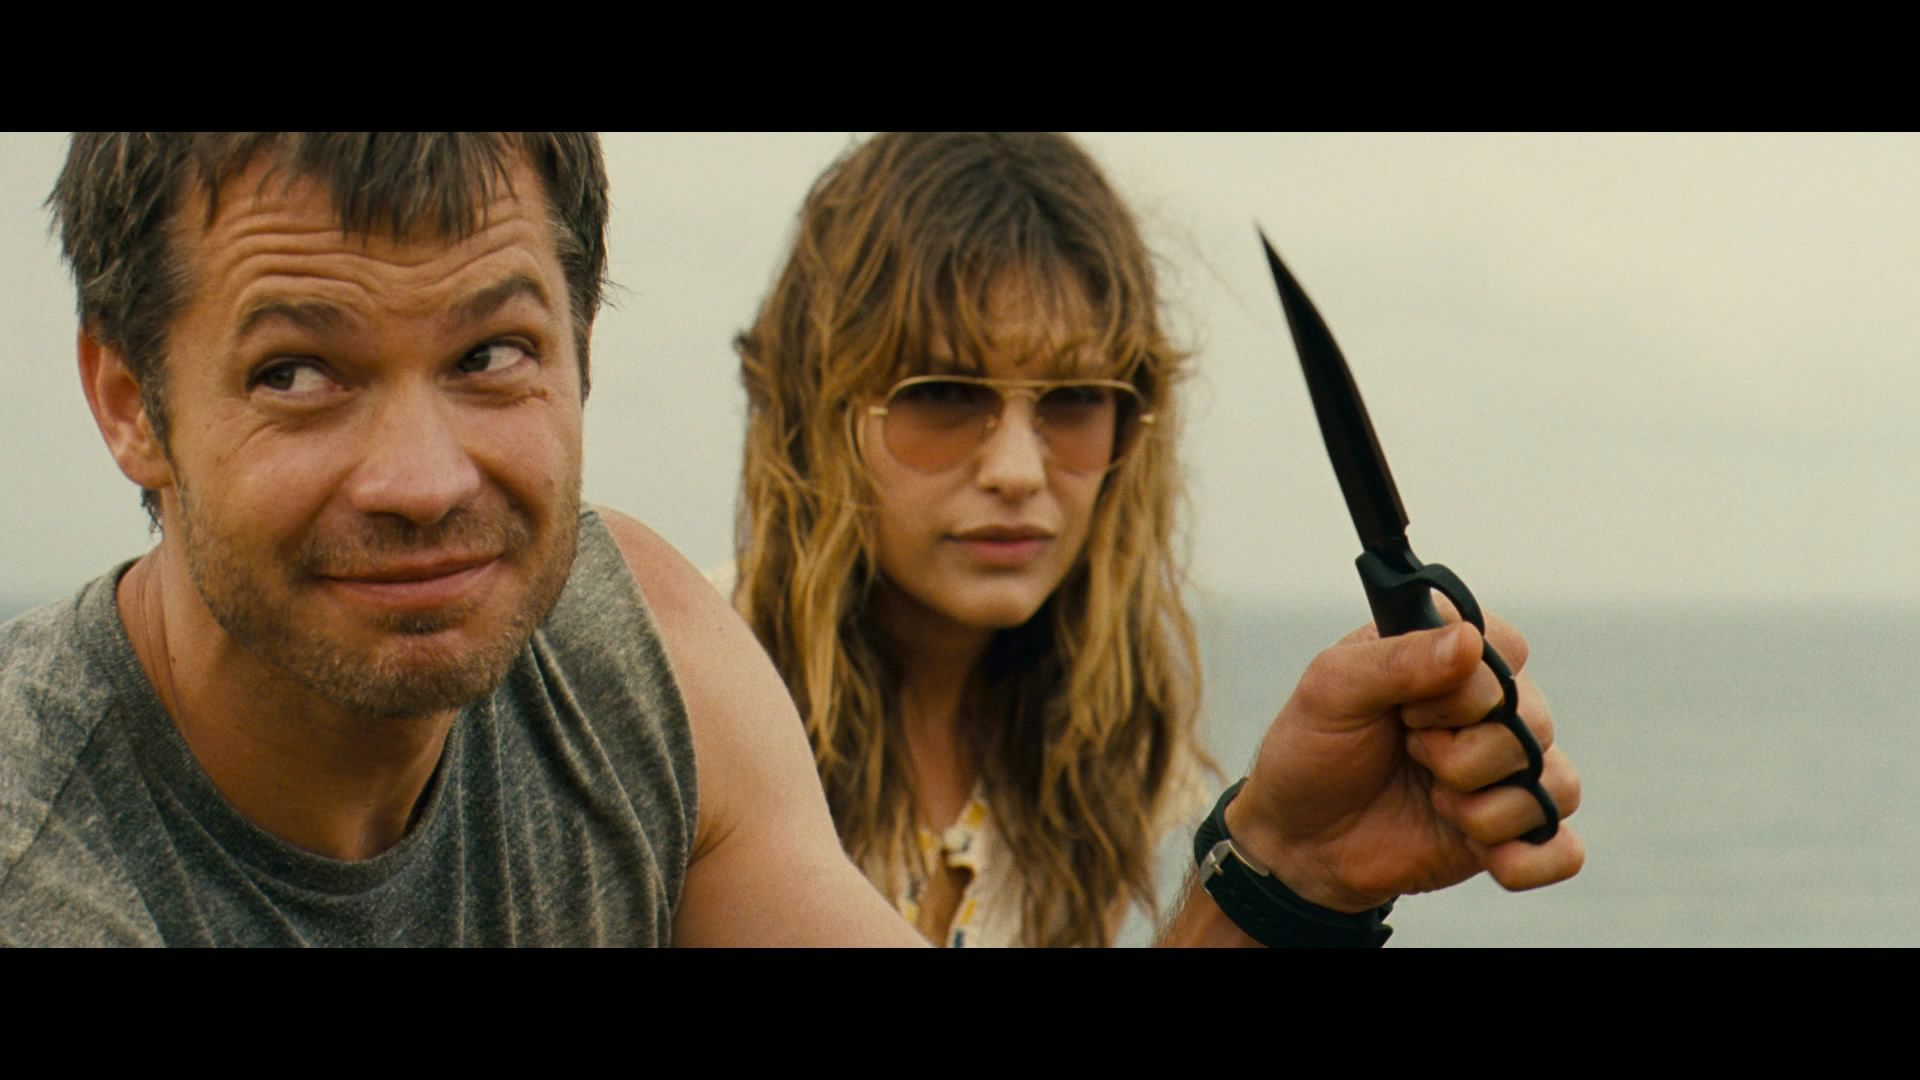 Timothy Olyphant and Milla Jovovich in 'A Perfect Getaway'